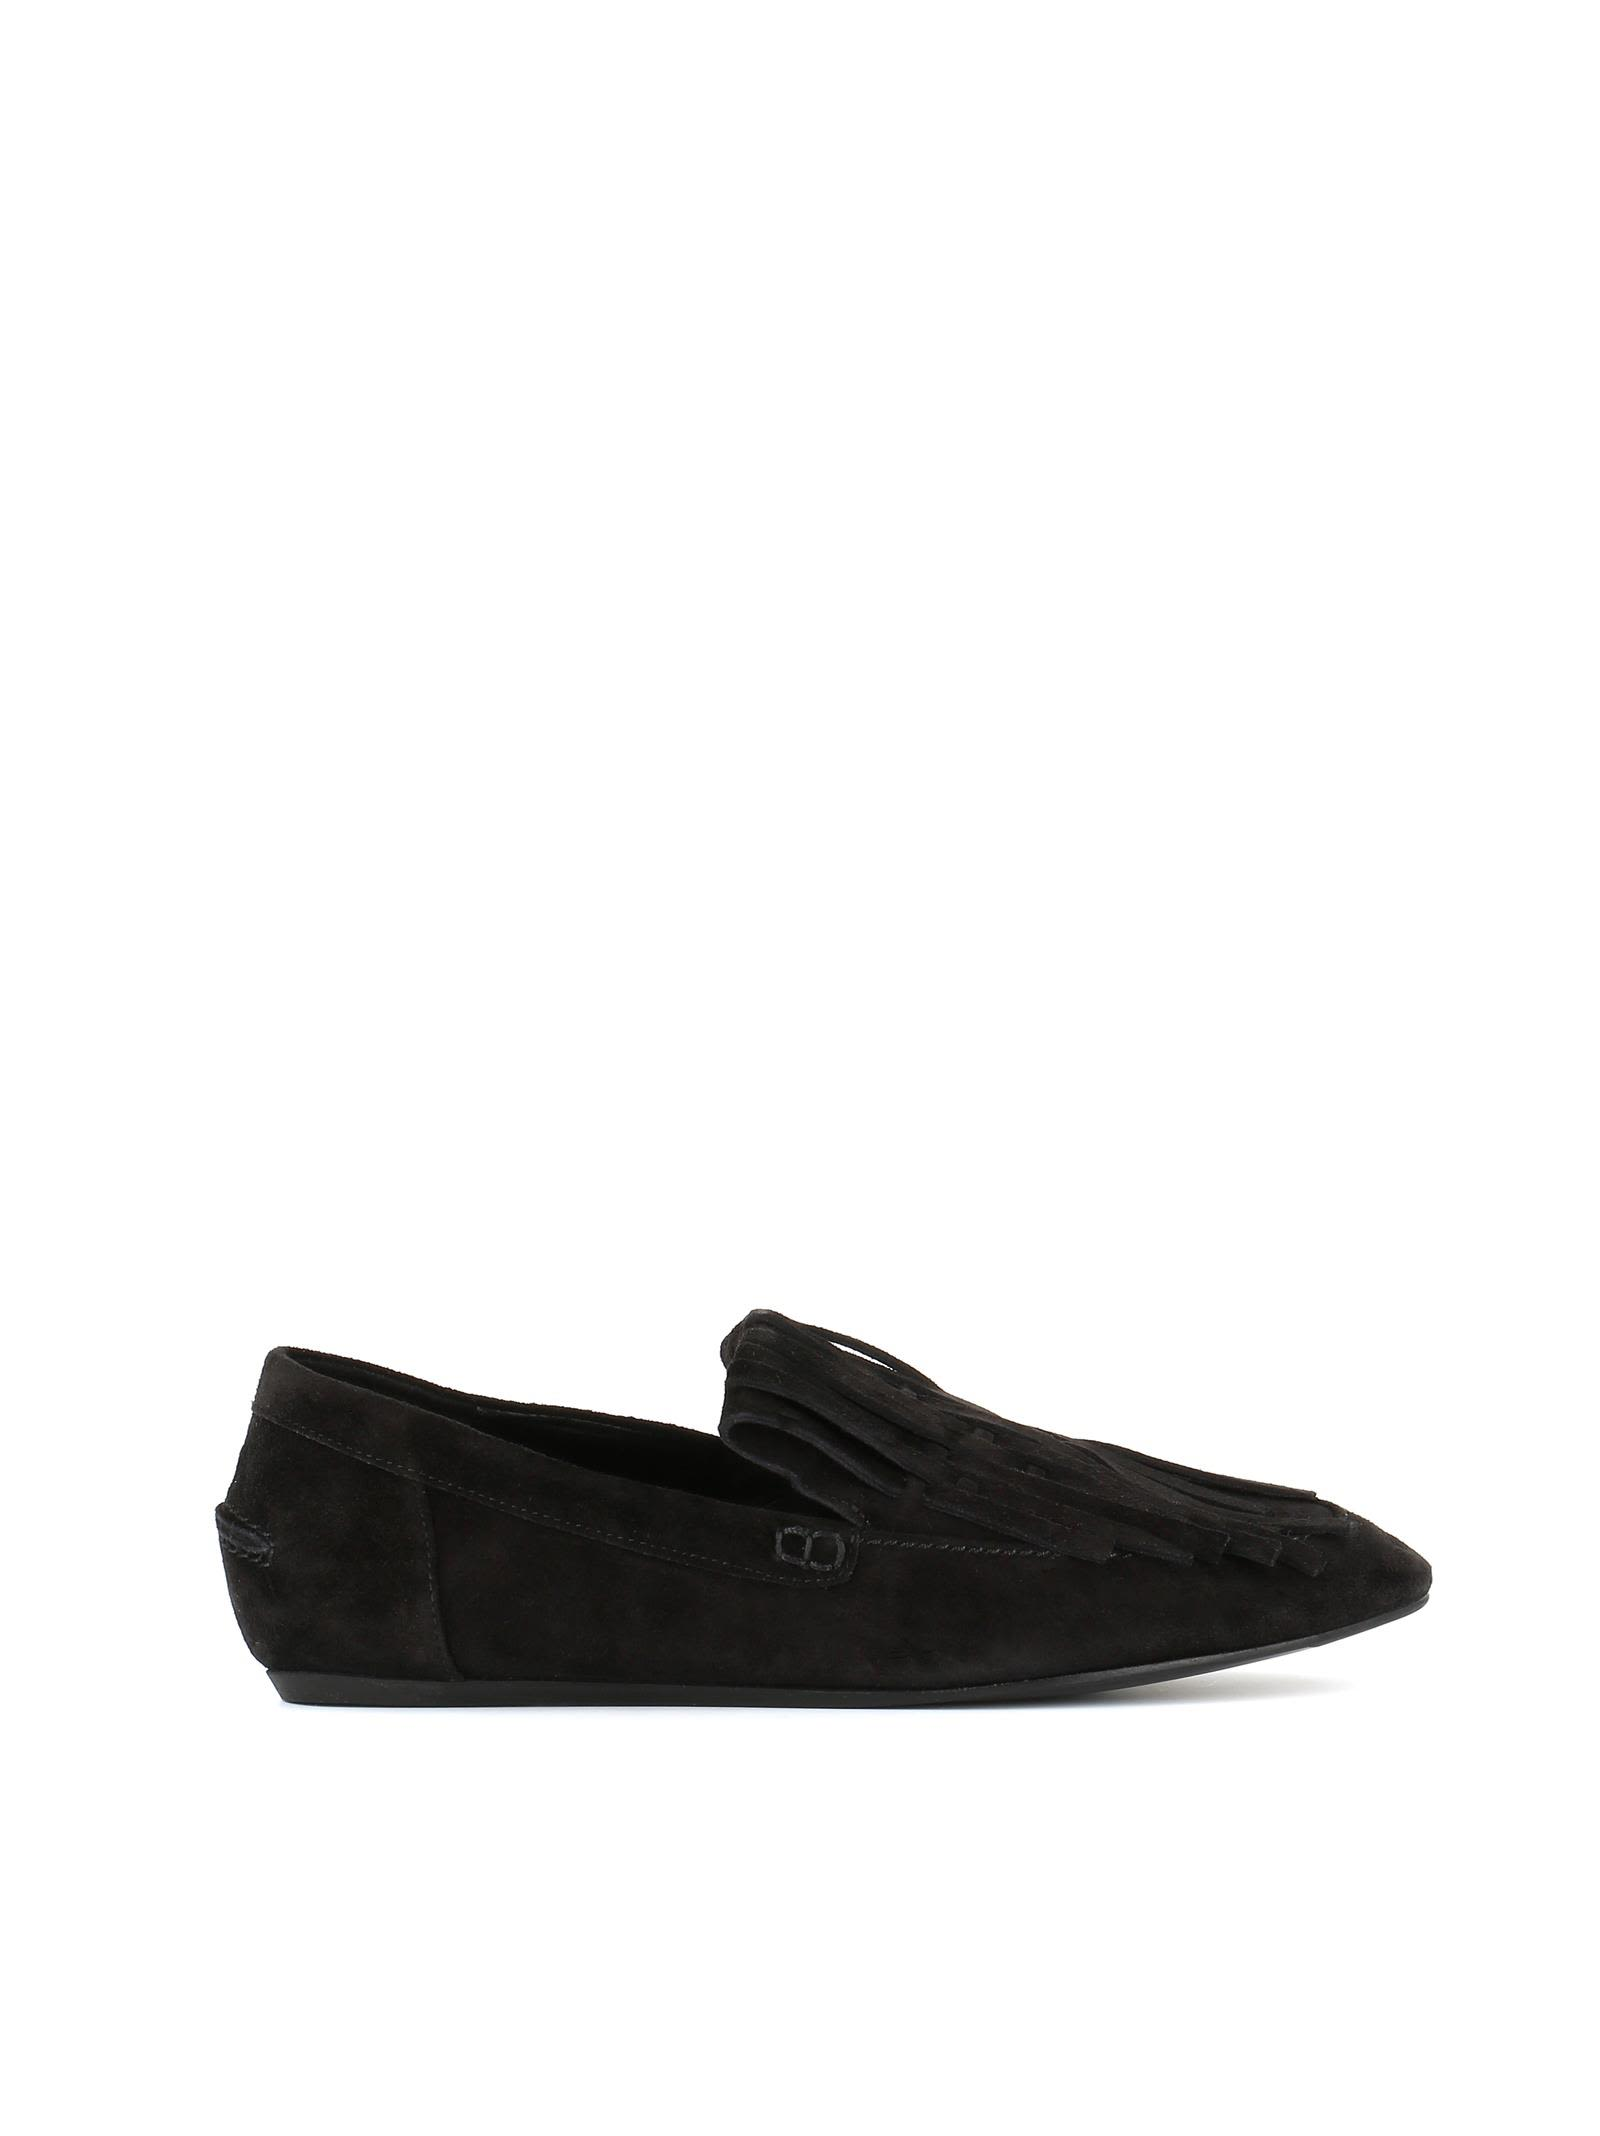 Fringed Loafer, Black